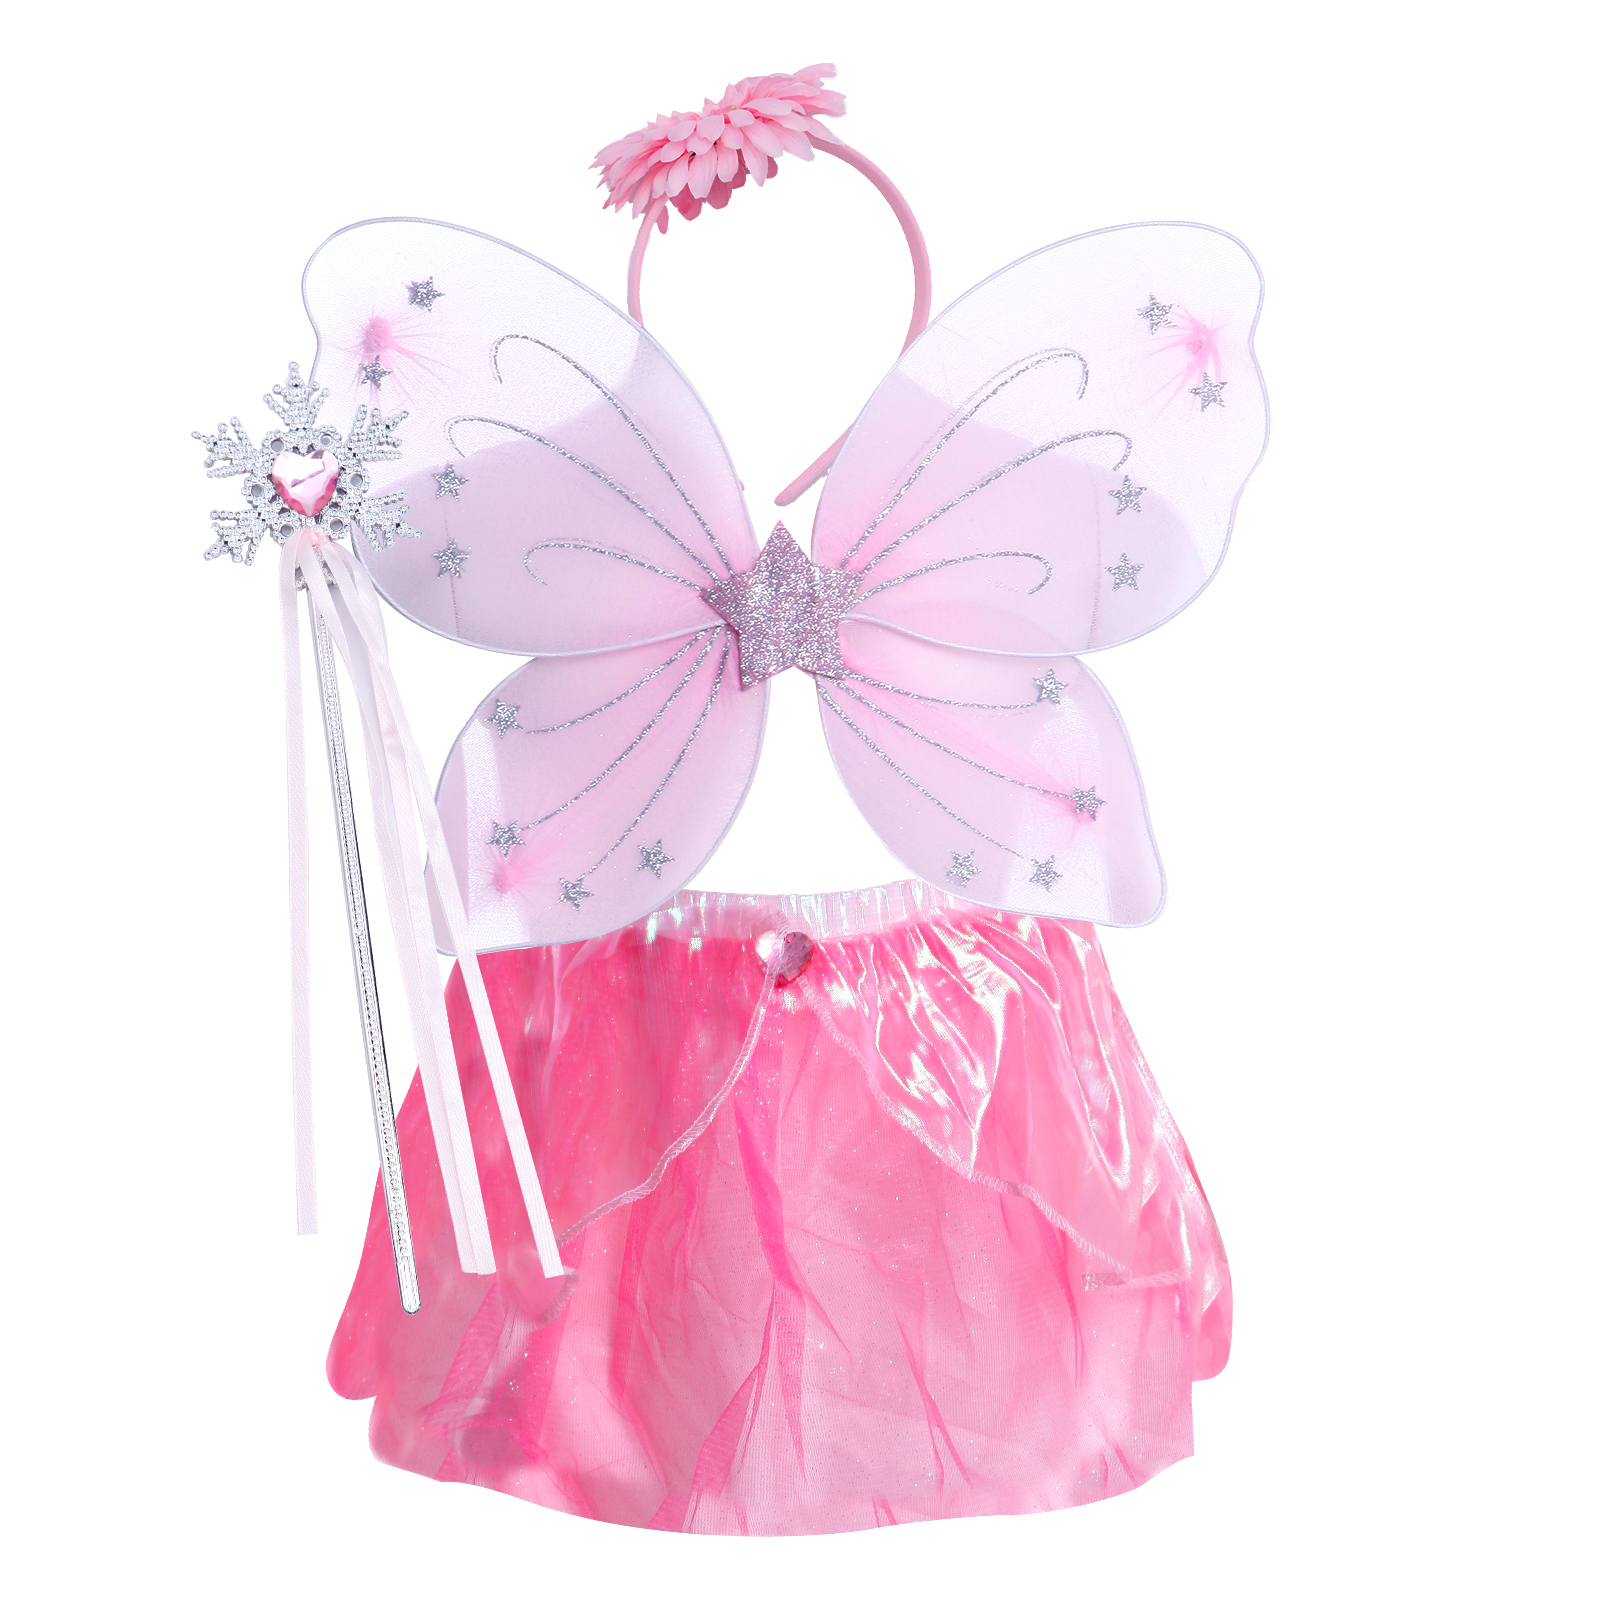 ailes de f e insecte papillon tutu deguisement enfant costume carnaval fille ebay. Black Bedroom Furniture Sets. Home Design Ideas